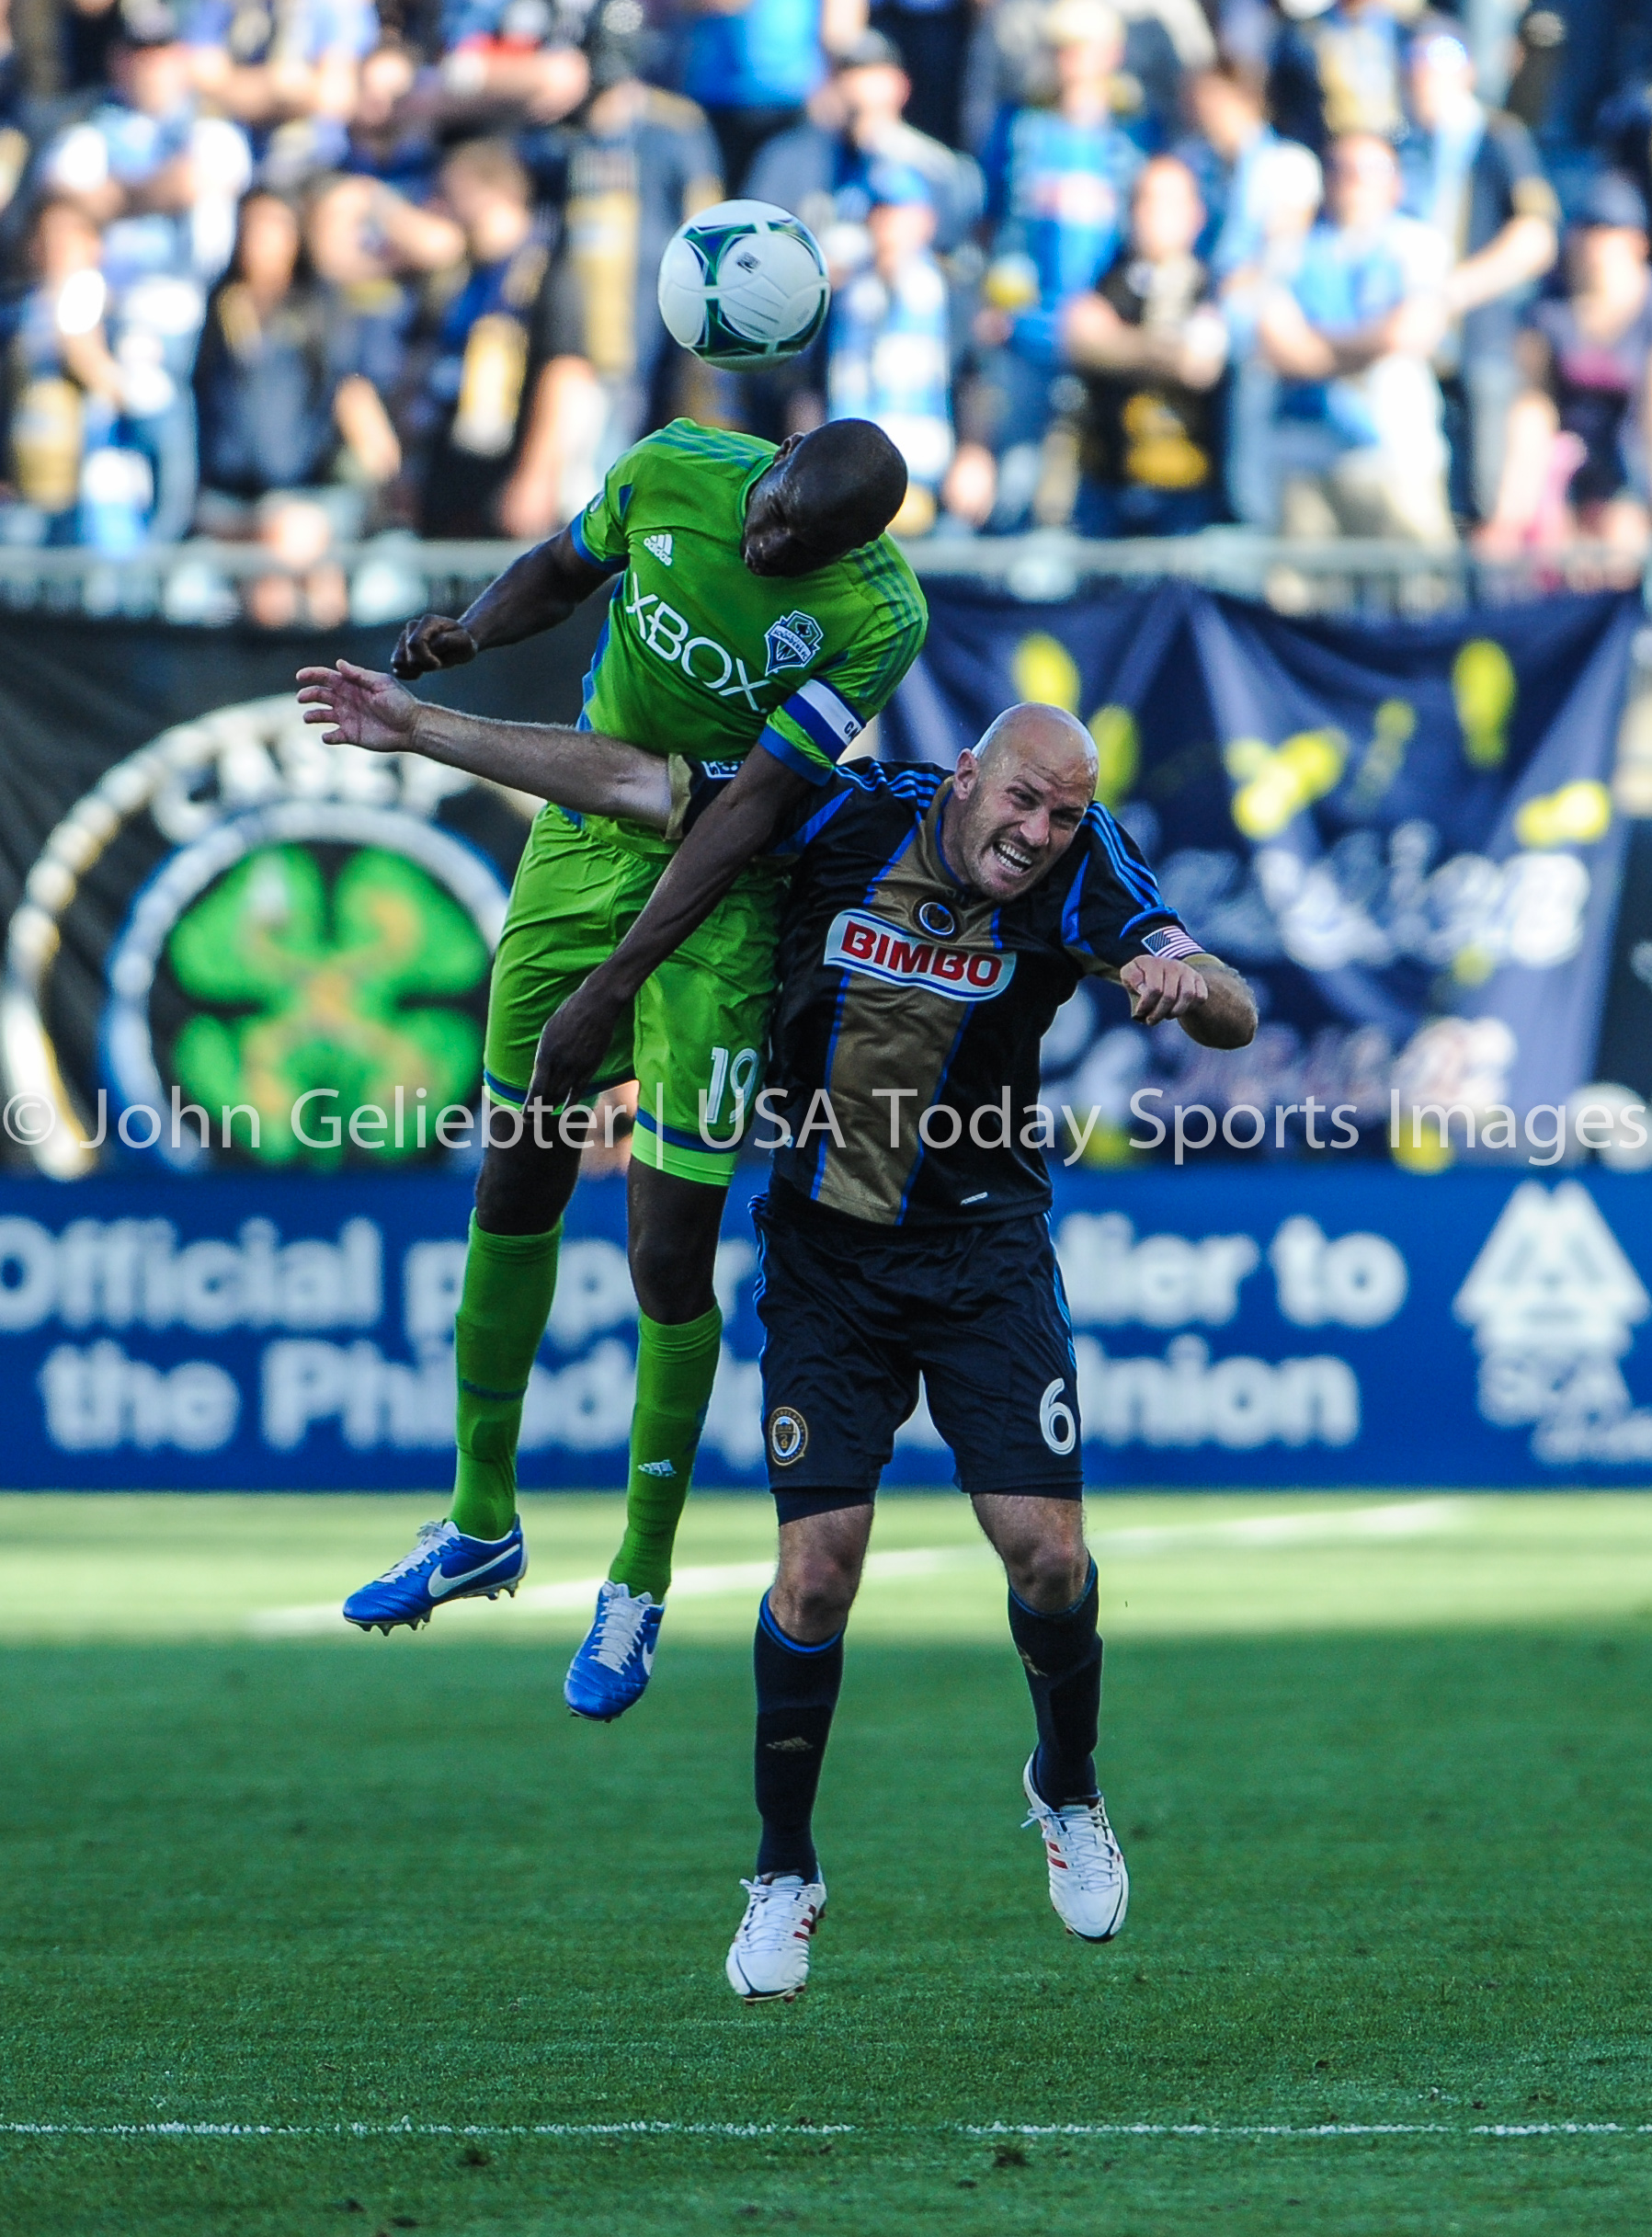 Sounders_Union_May_4_2013_JAG1633.jpg